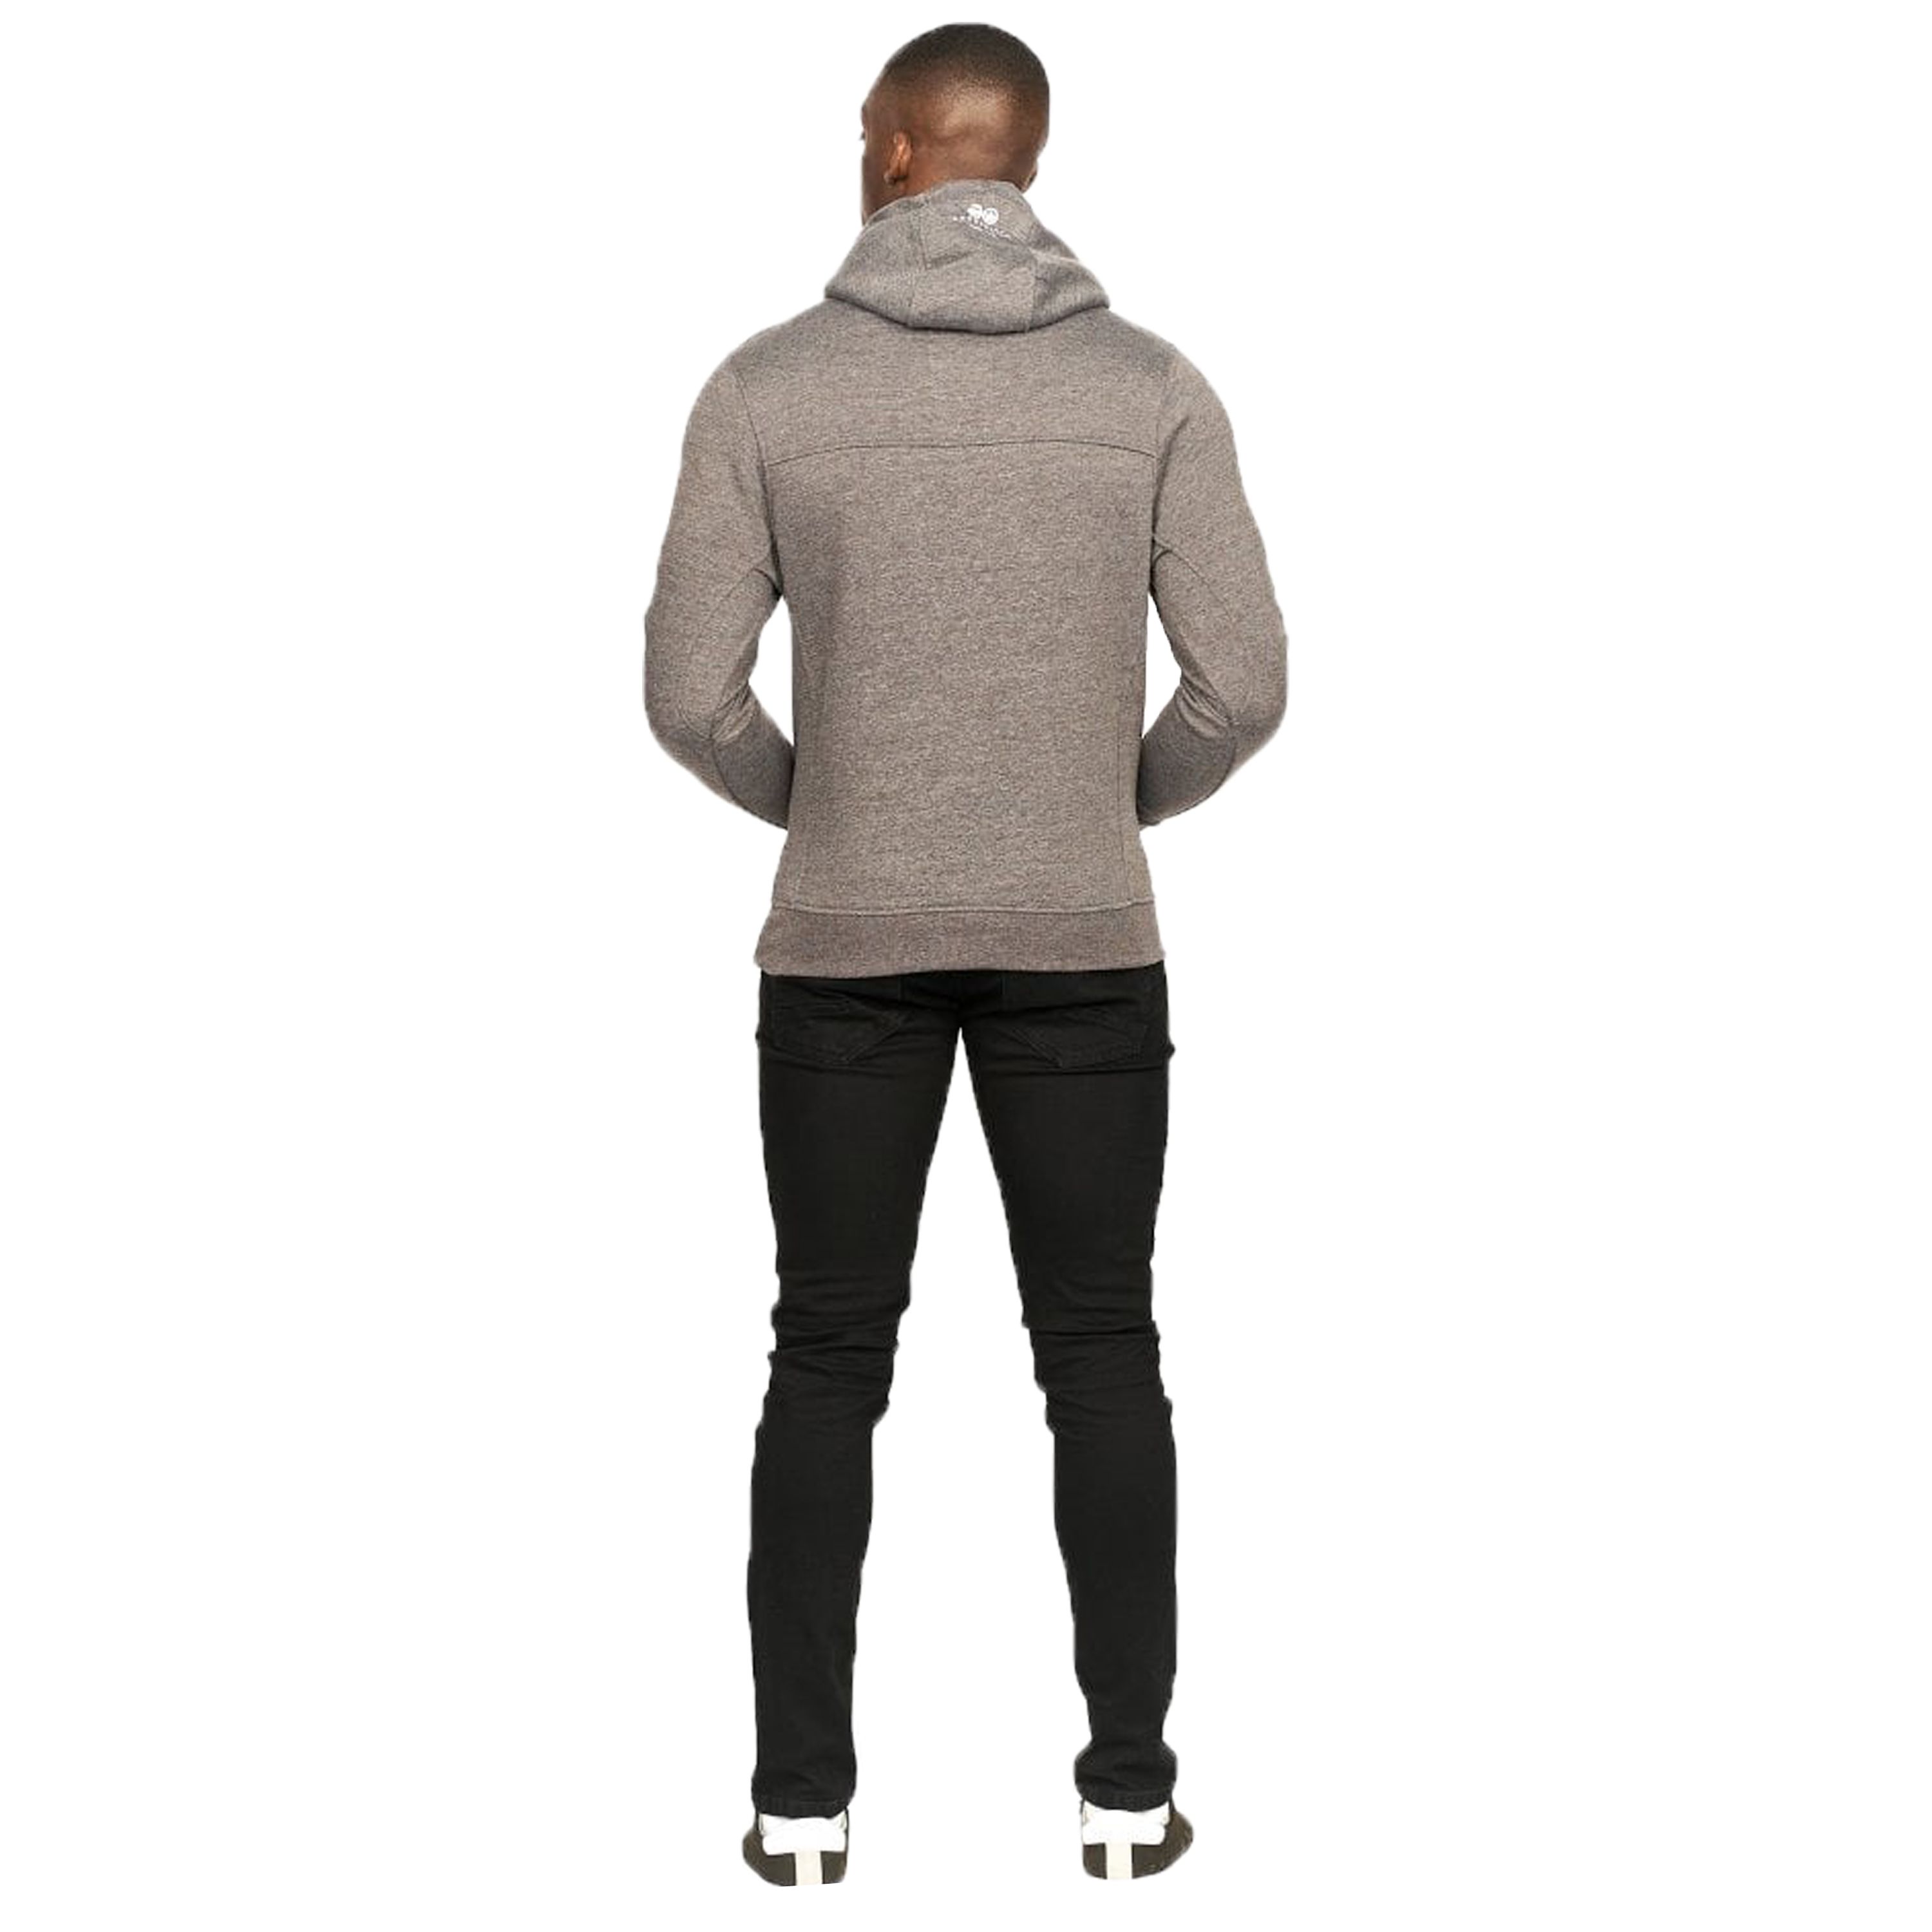 Mens-Sweatshirt-By-Crosshatch-Over-The-Head-Hoodie-Printed-Pullover-Cotton-Top thumbnail 12